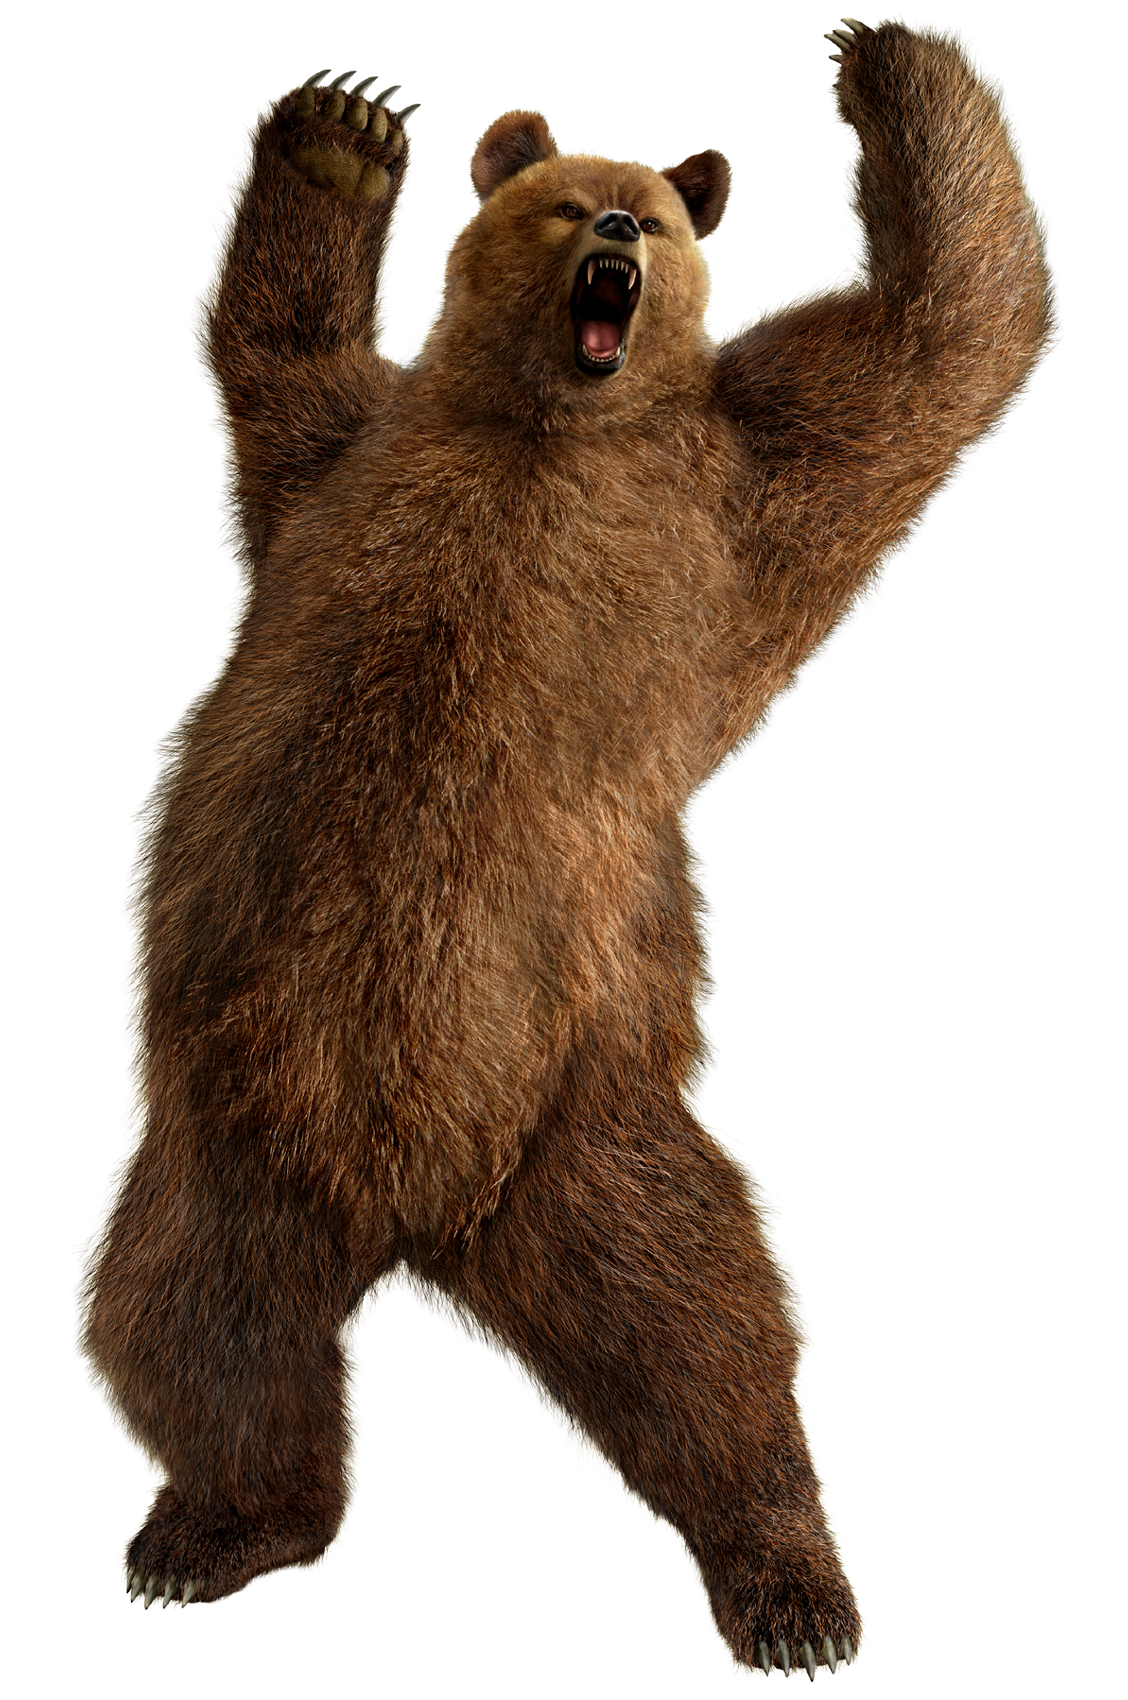 Standing bear png. Grizzly image purepng free